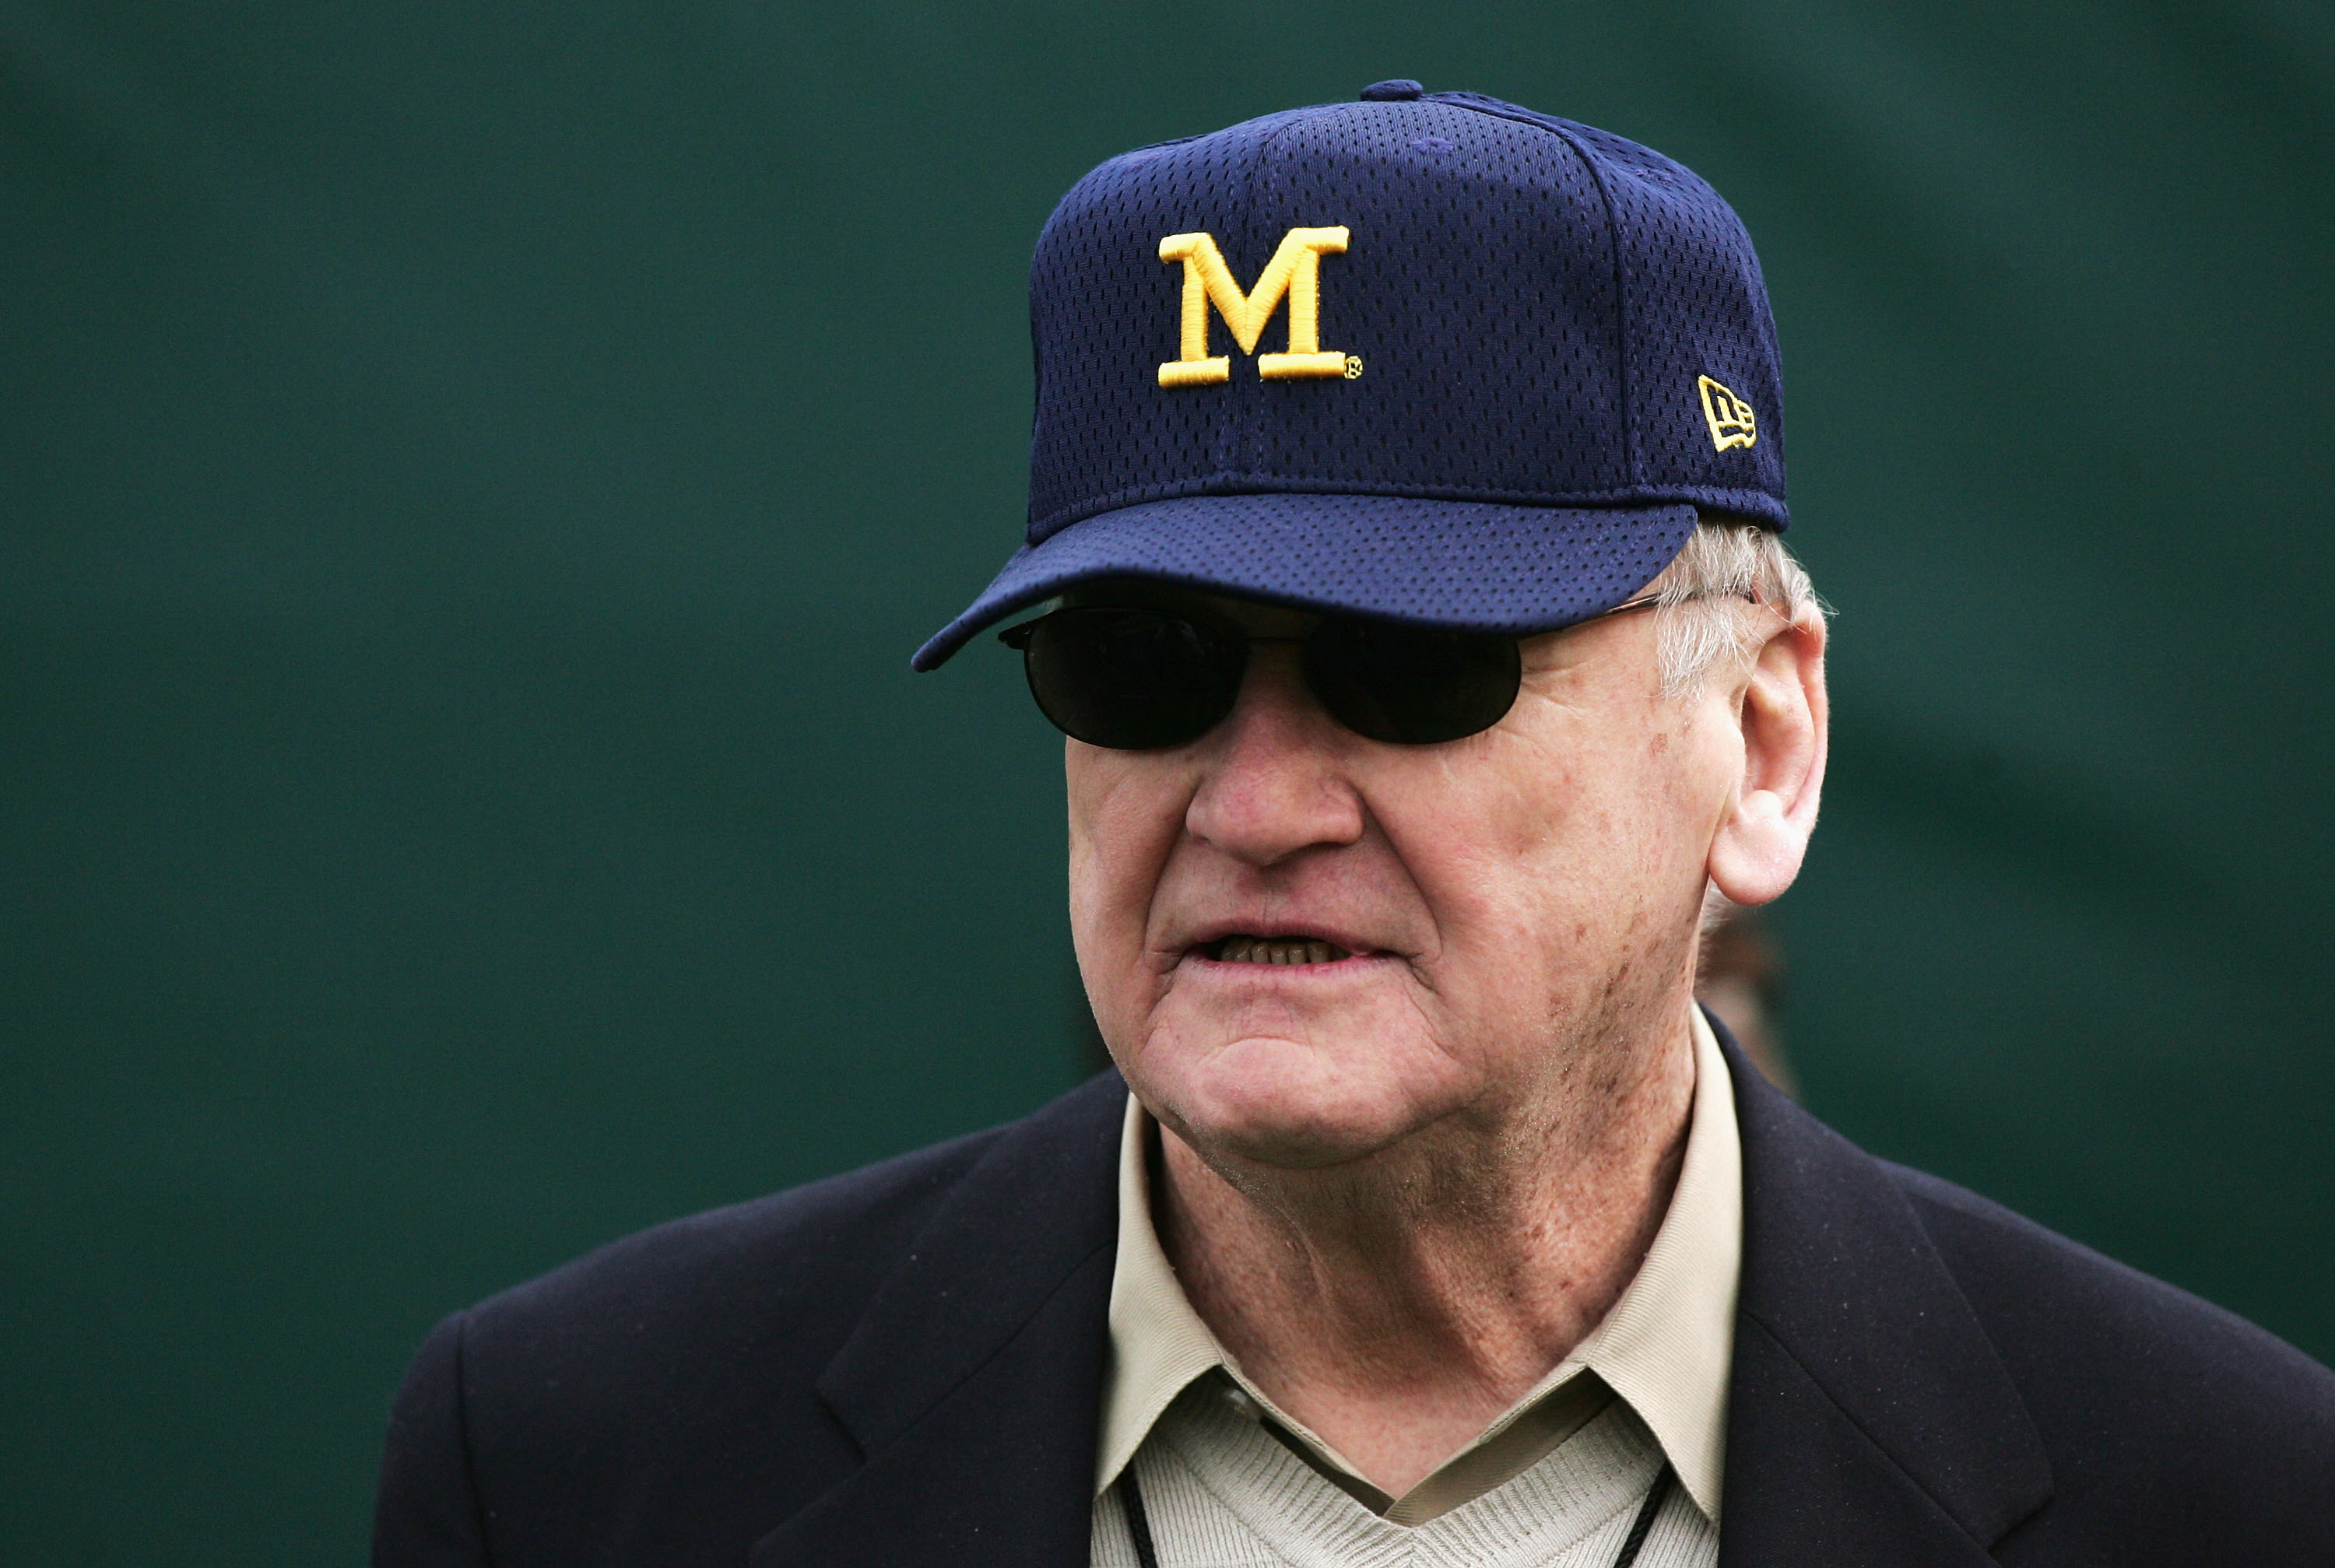 PASADENA, CA - JANUARY 01:  Former head coach Bo Schembechler of the Michigan Wolverines looks on in the 91st Rose Bowl Game against the Texas Longhorns at the Rose Bowl on January 1, 2005 in Pasadena, California.    (Photo by Jed Jacobsohn/Getty Images)